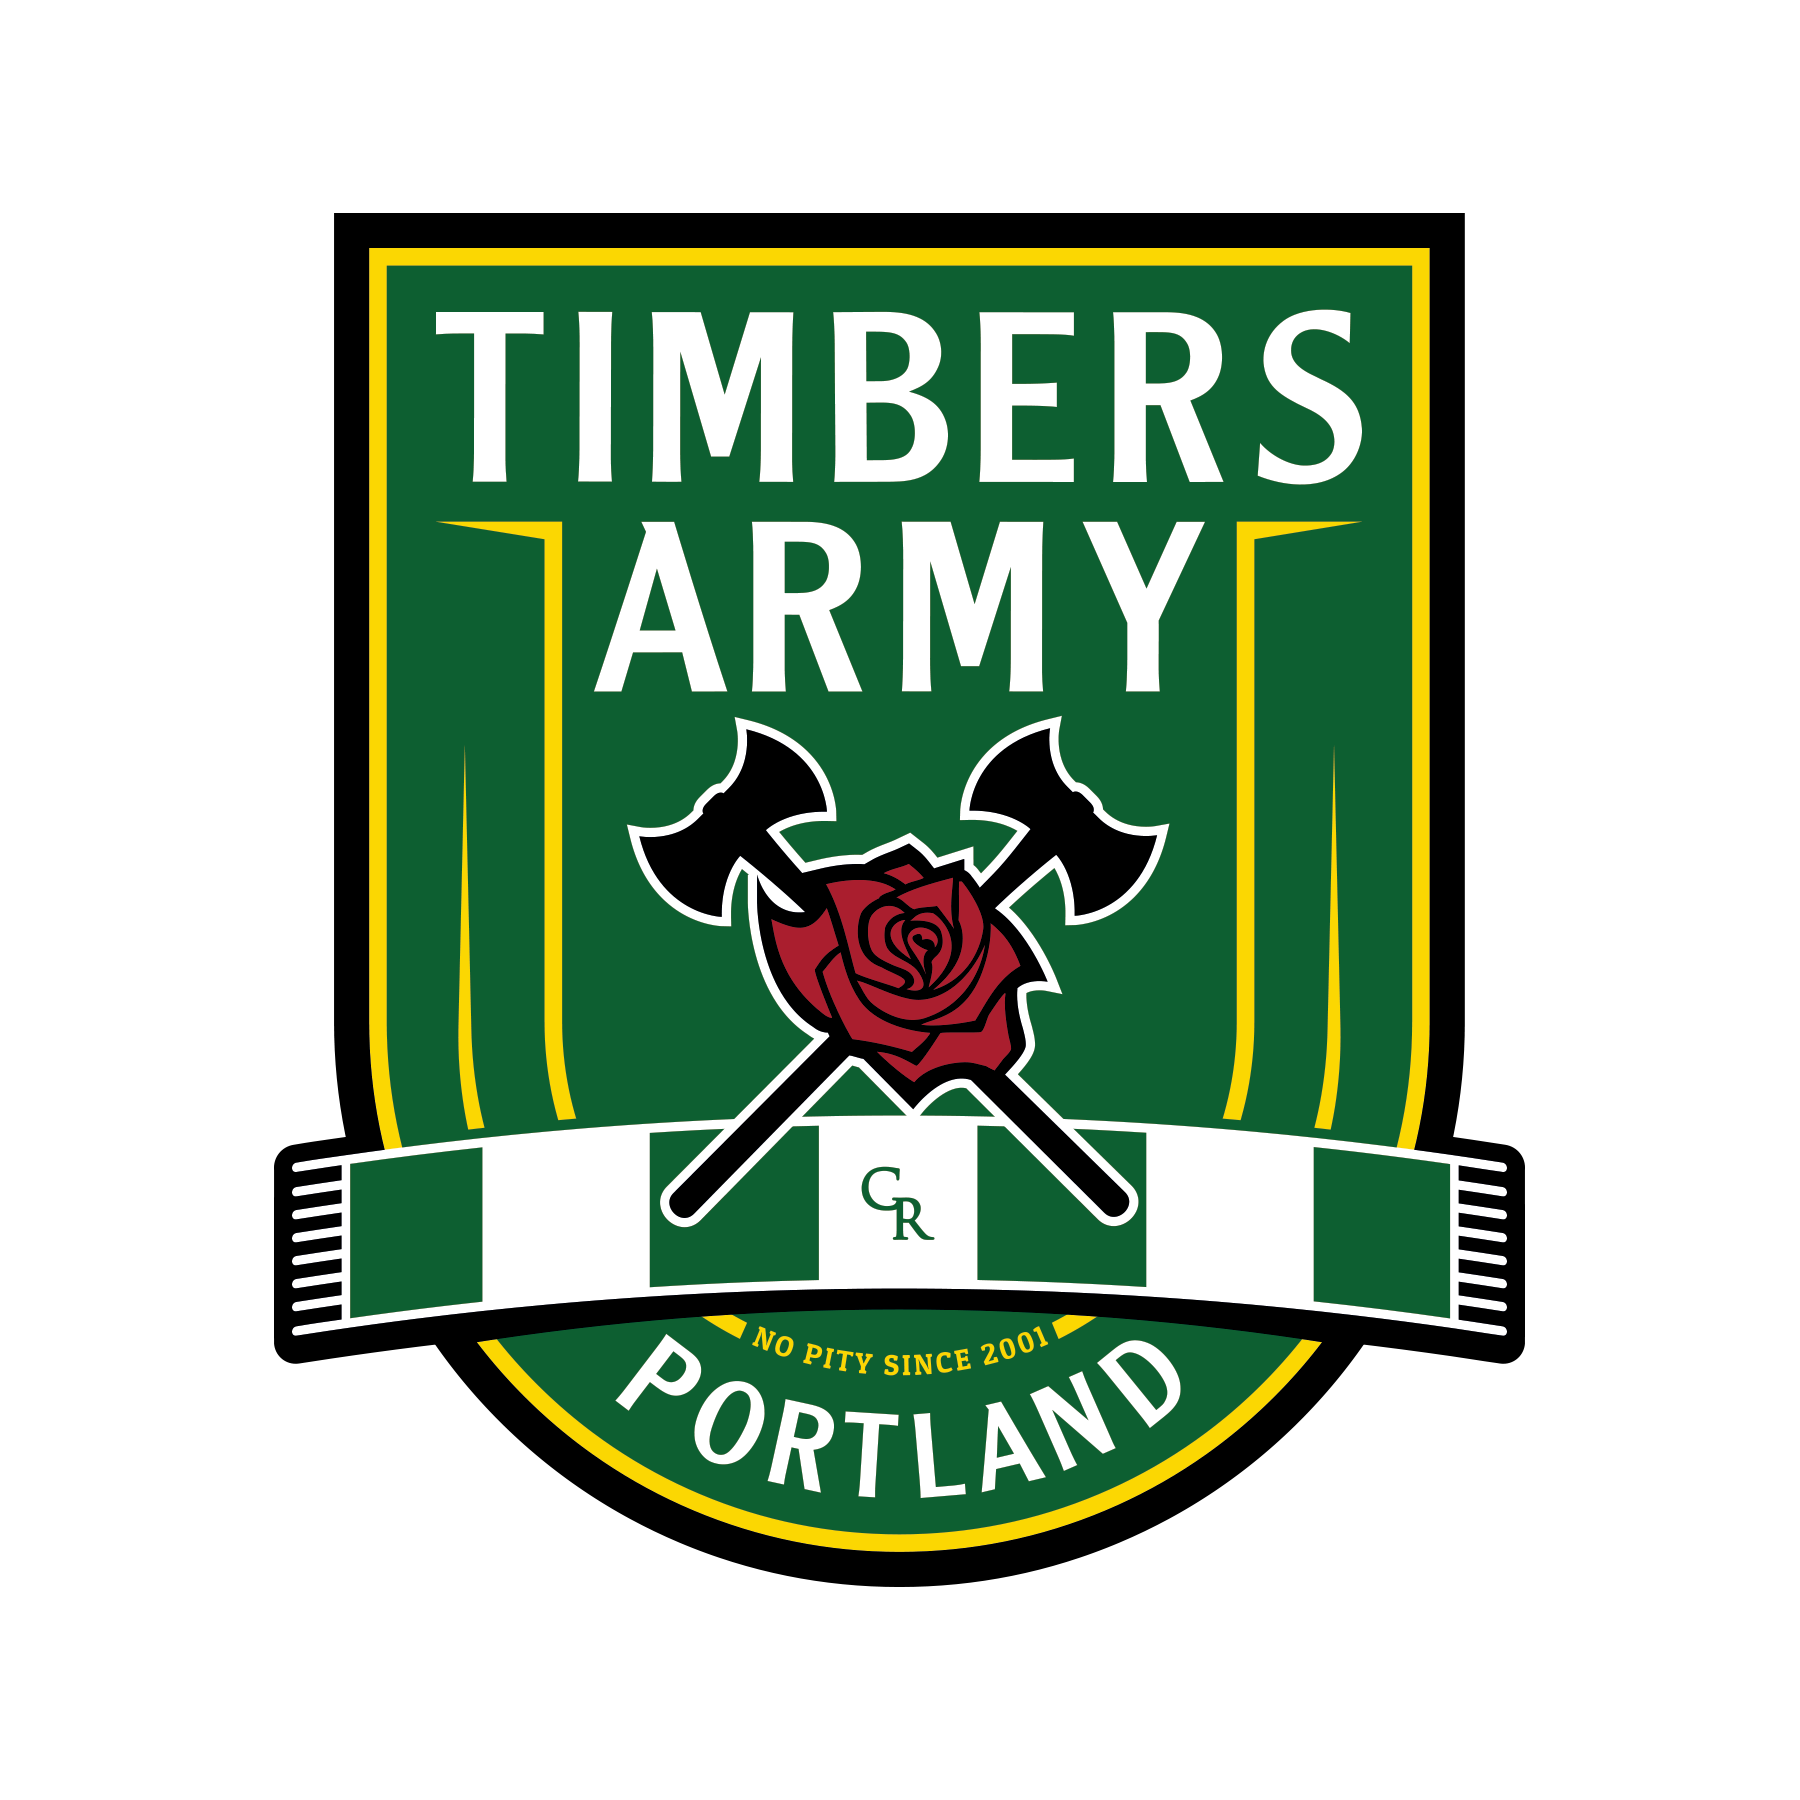 The Timbers Army Crest